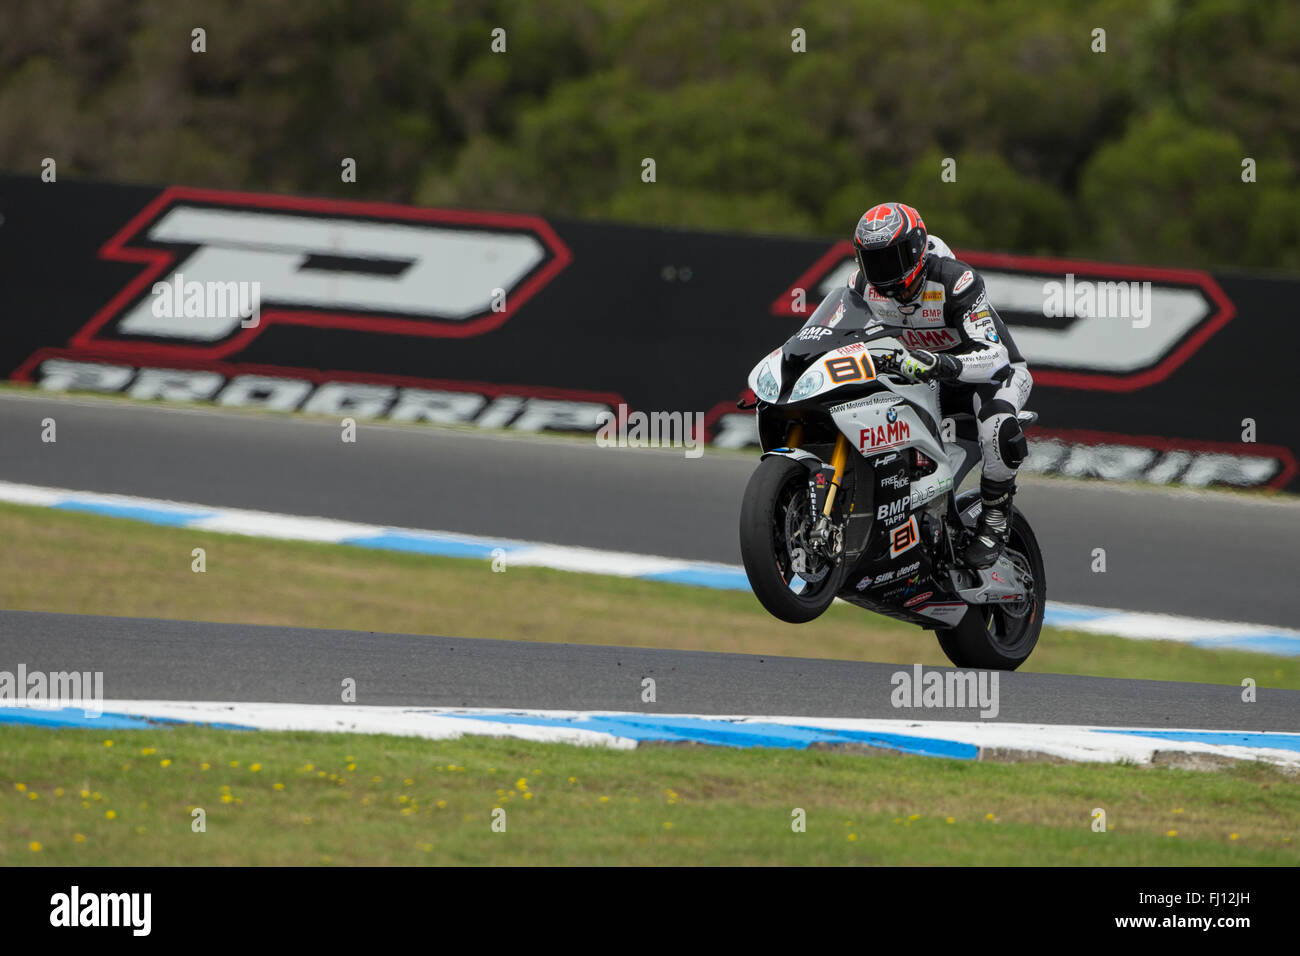 Philip Island, Australia. 28th Feb, 2016. Warm up. Jordi Torres, Althea BMW Racing. Credit:  Russell Hunter/Alamy Stock Photo